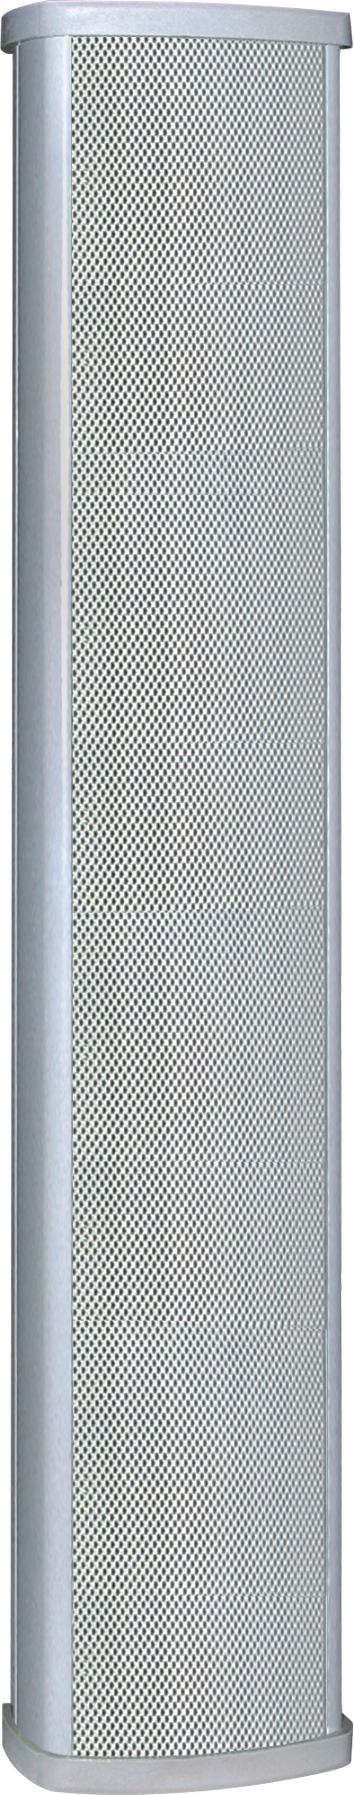 Outdoor Public address background music system long throw pa speaker column speaker 60W OBT327